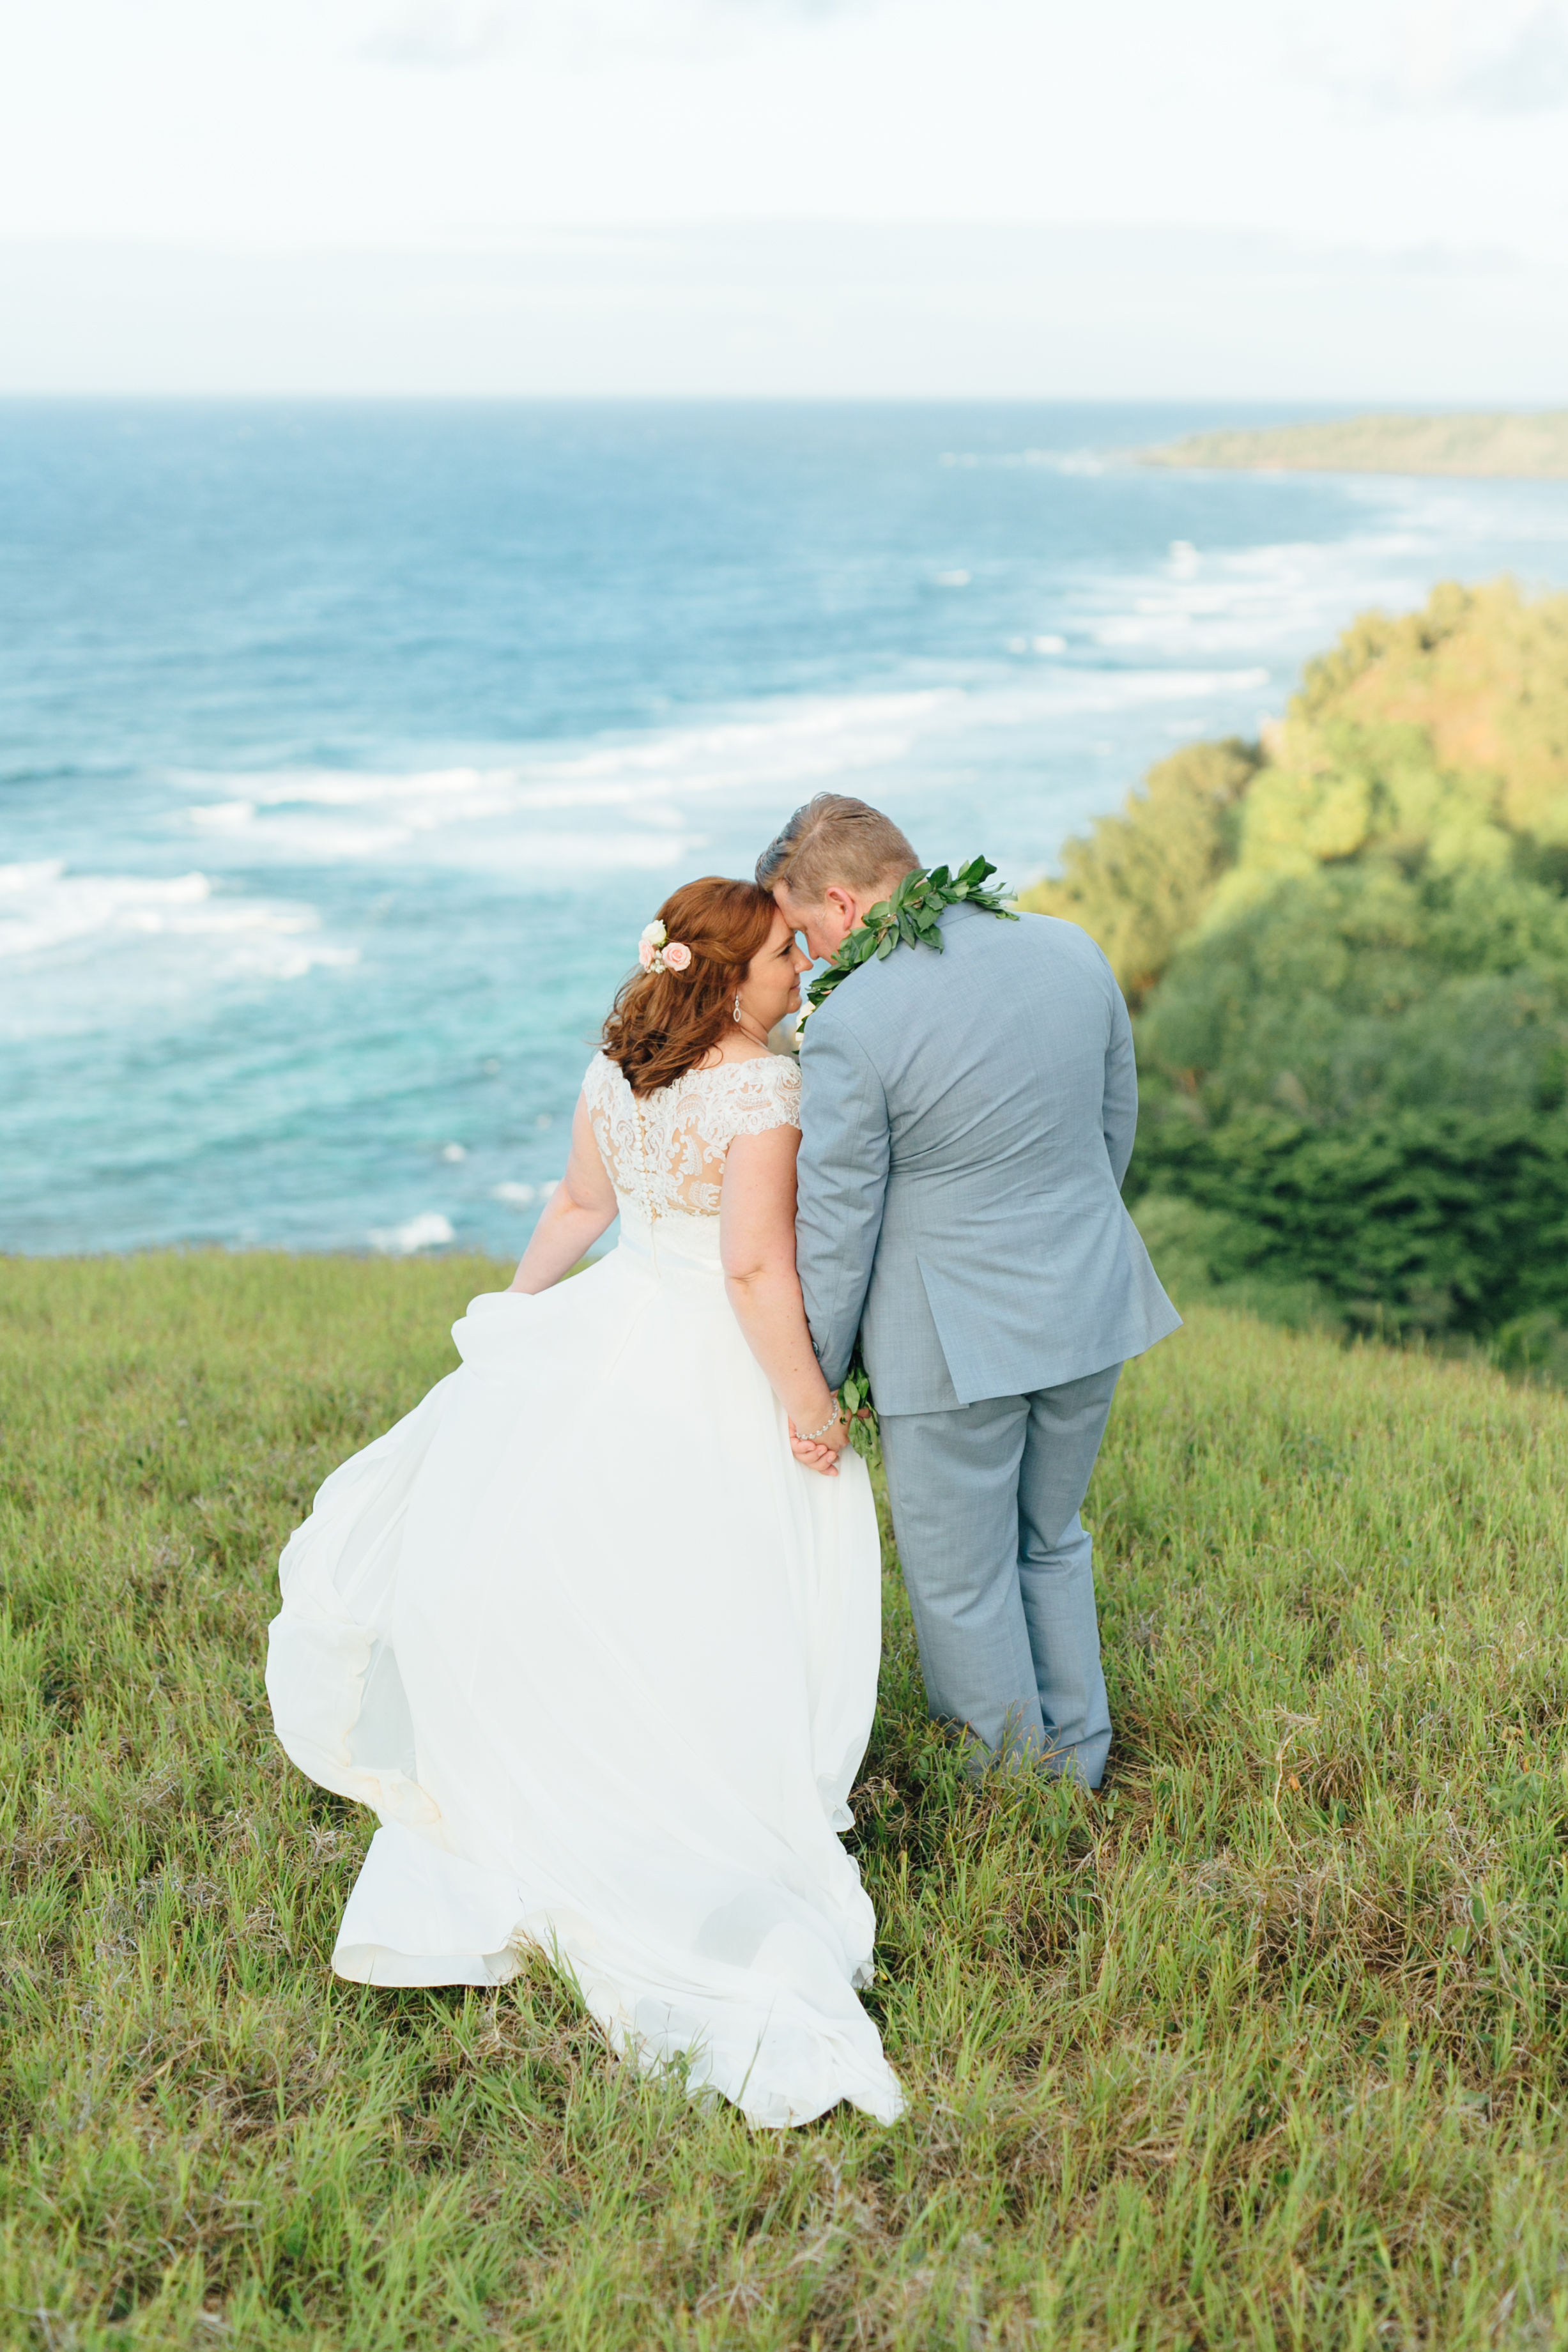 Elope with a Spectacular View of Kauai's Coastline